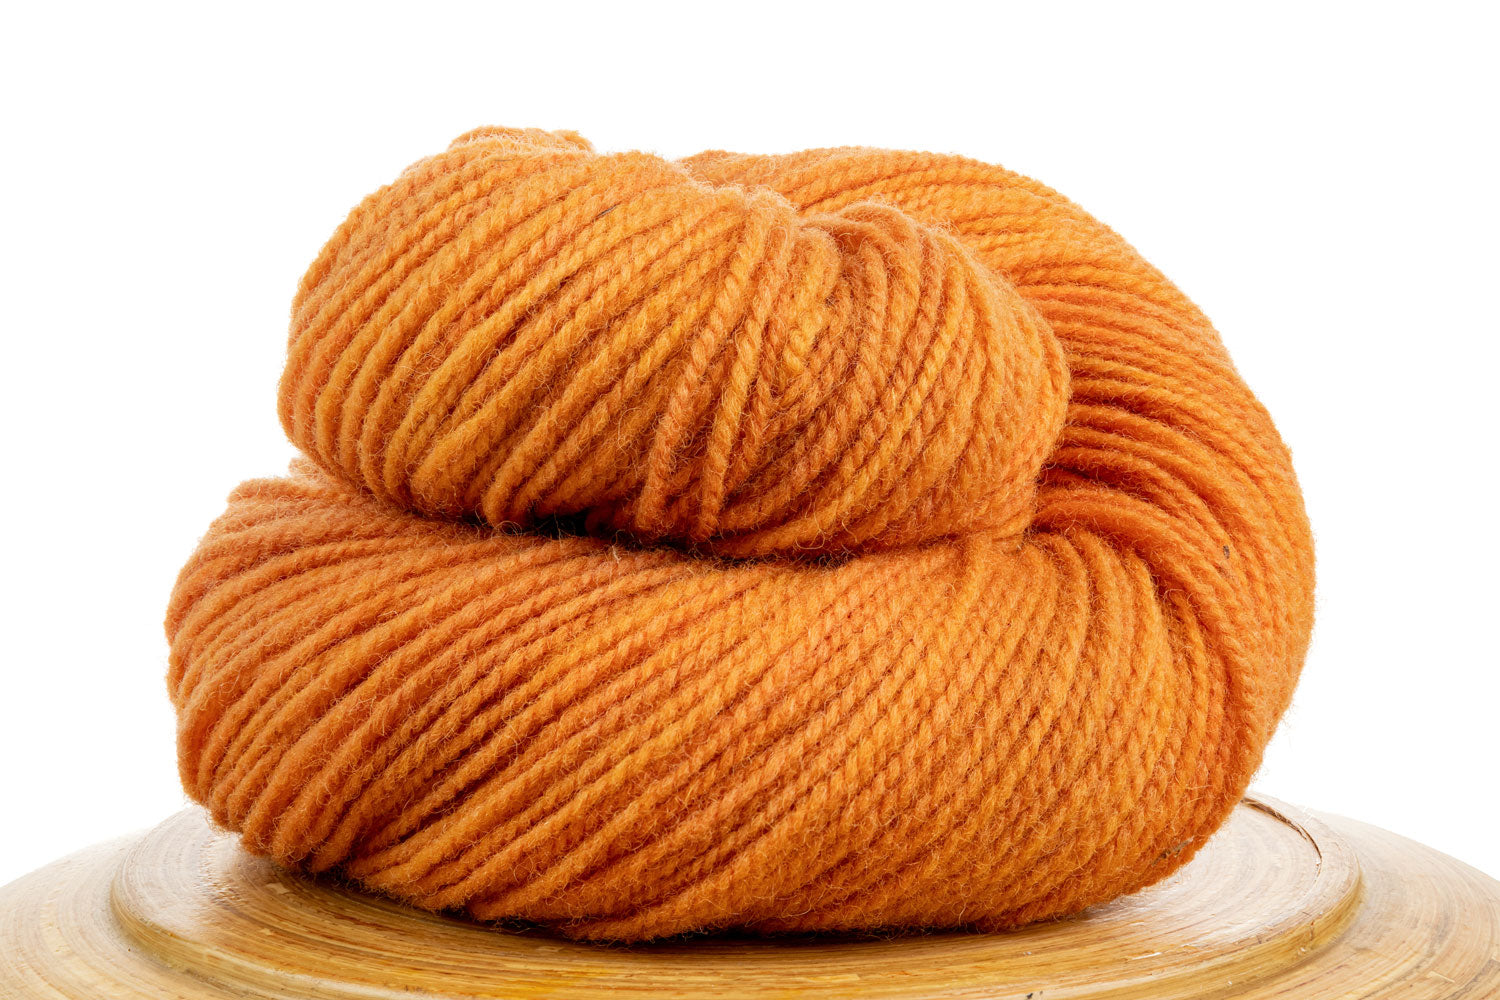 Winfield Canadian hand-dyed wool yarn in Zest, a bright orange